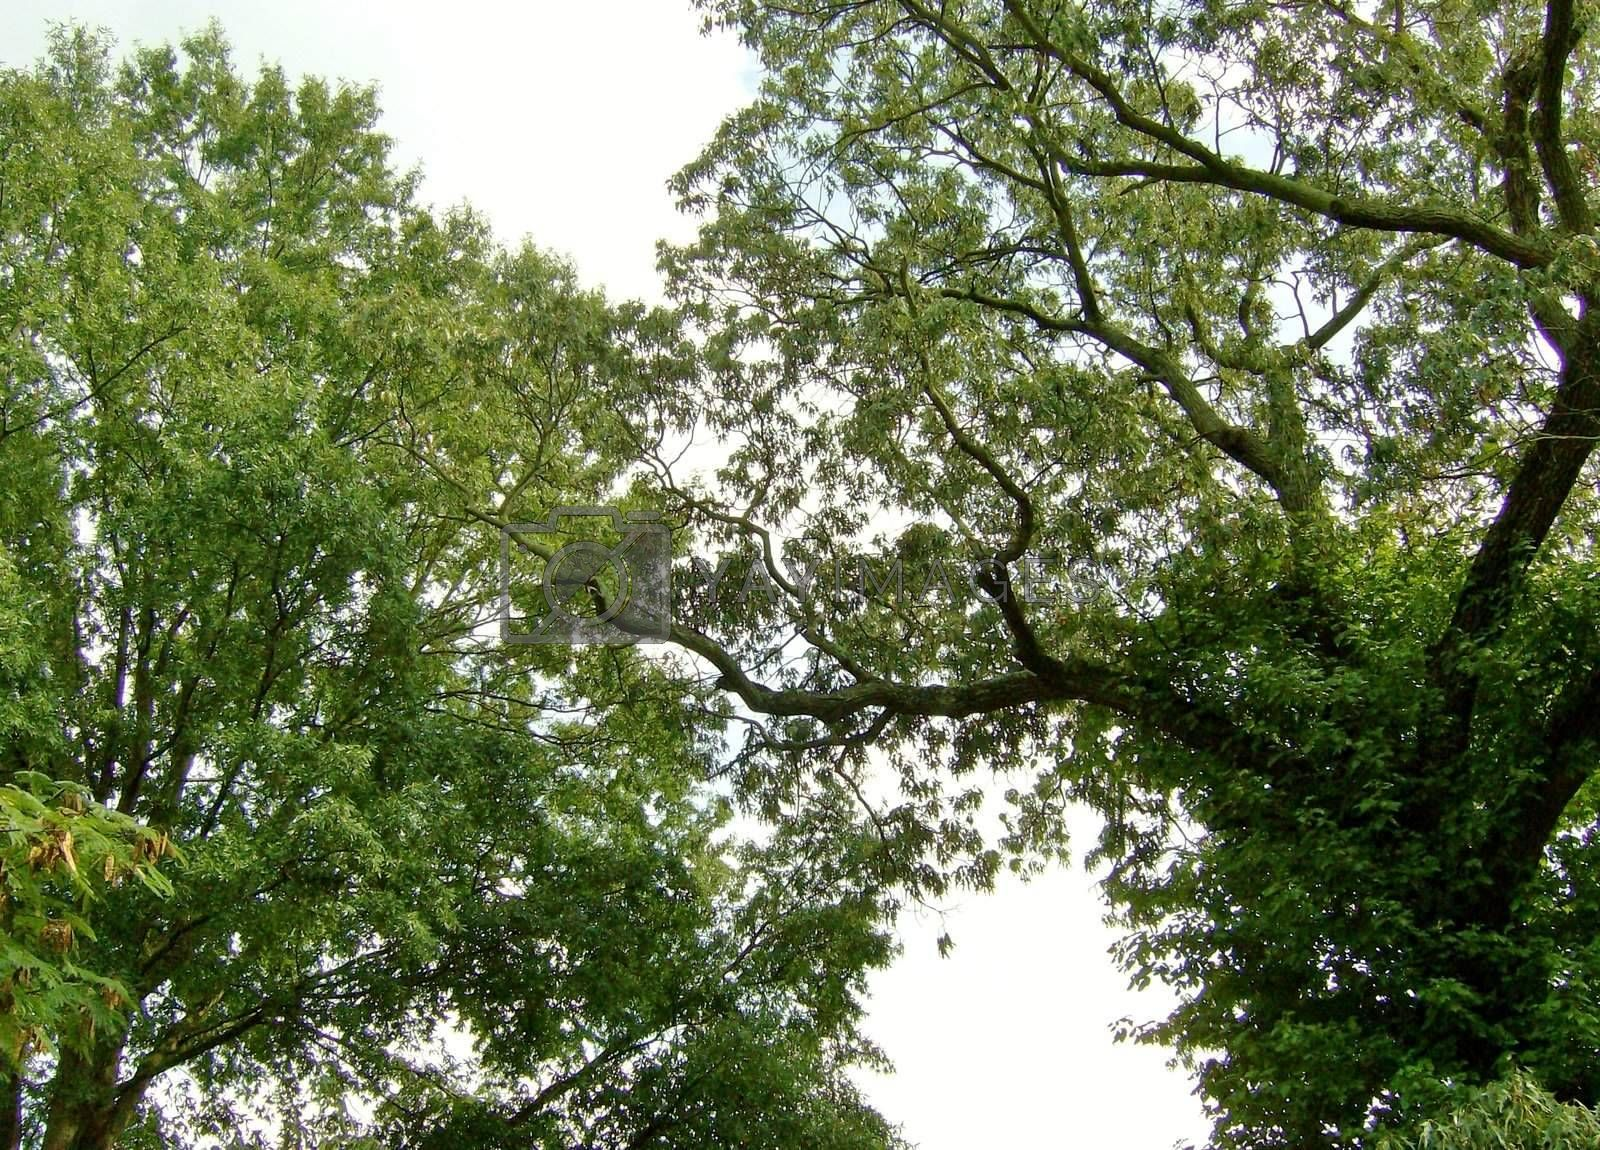 A pair of oak trees probably over 100 years old with branches that get green with moss every summer.